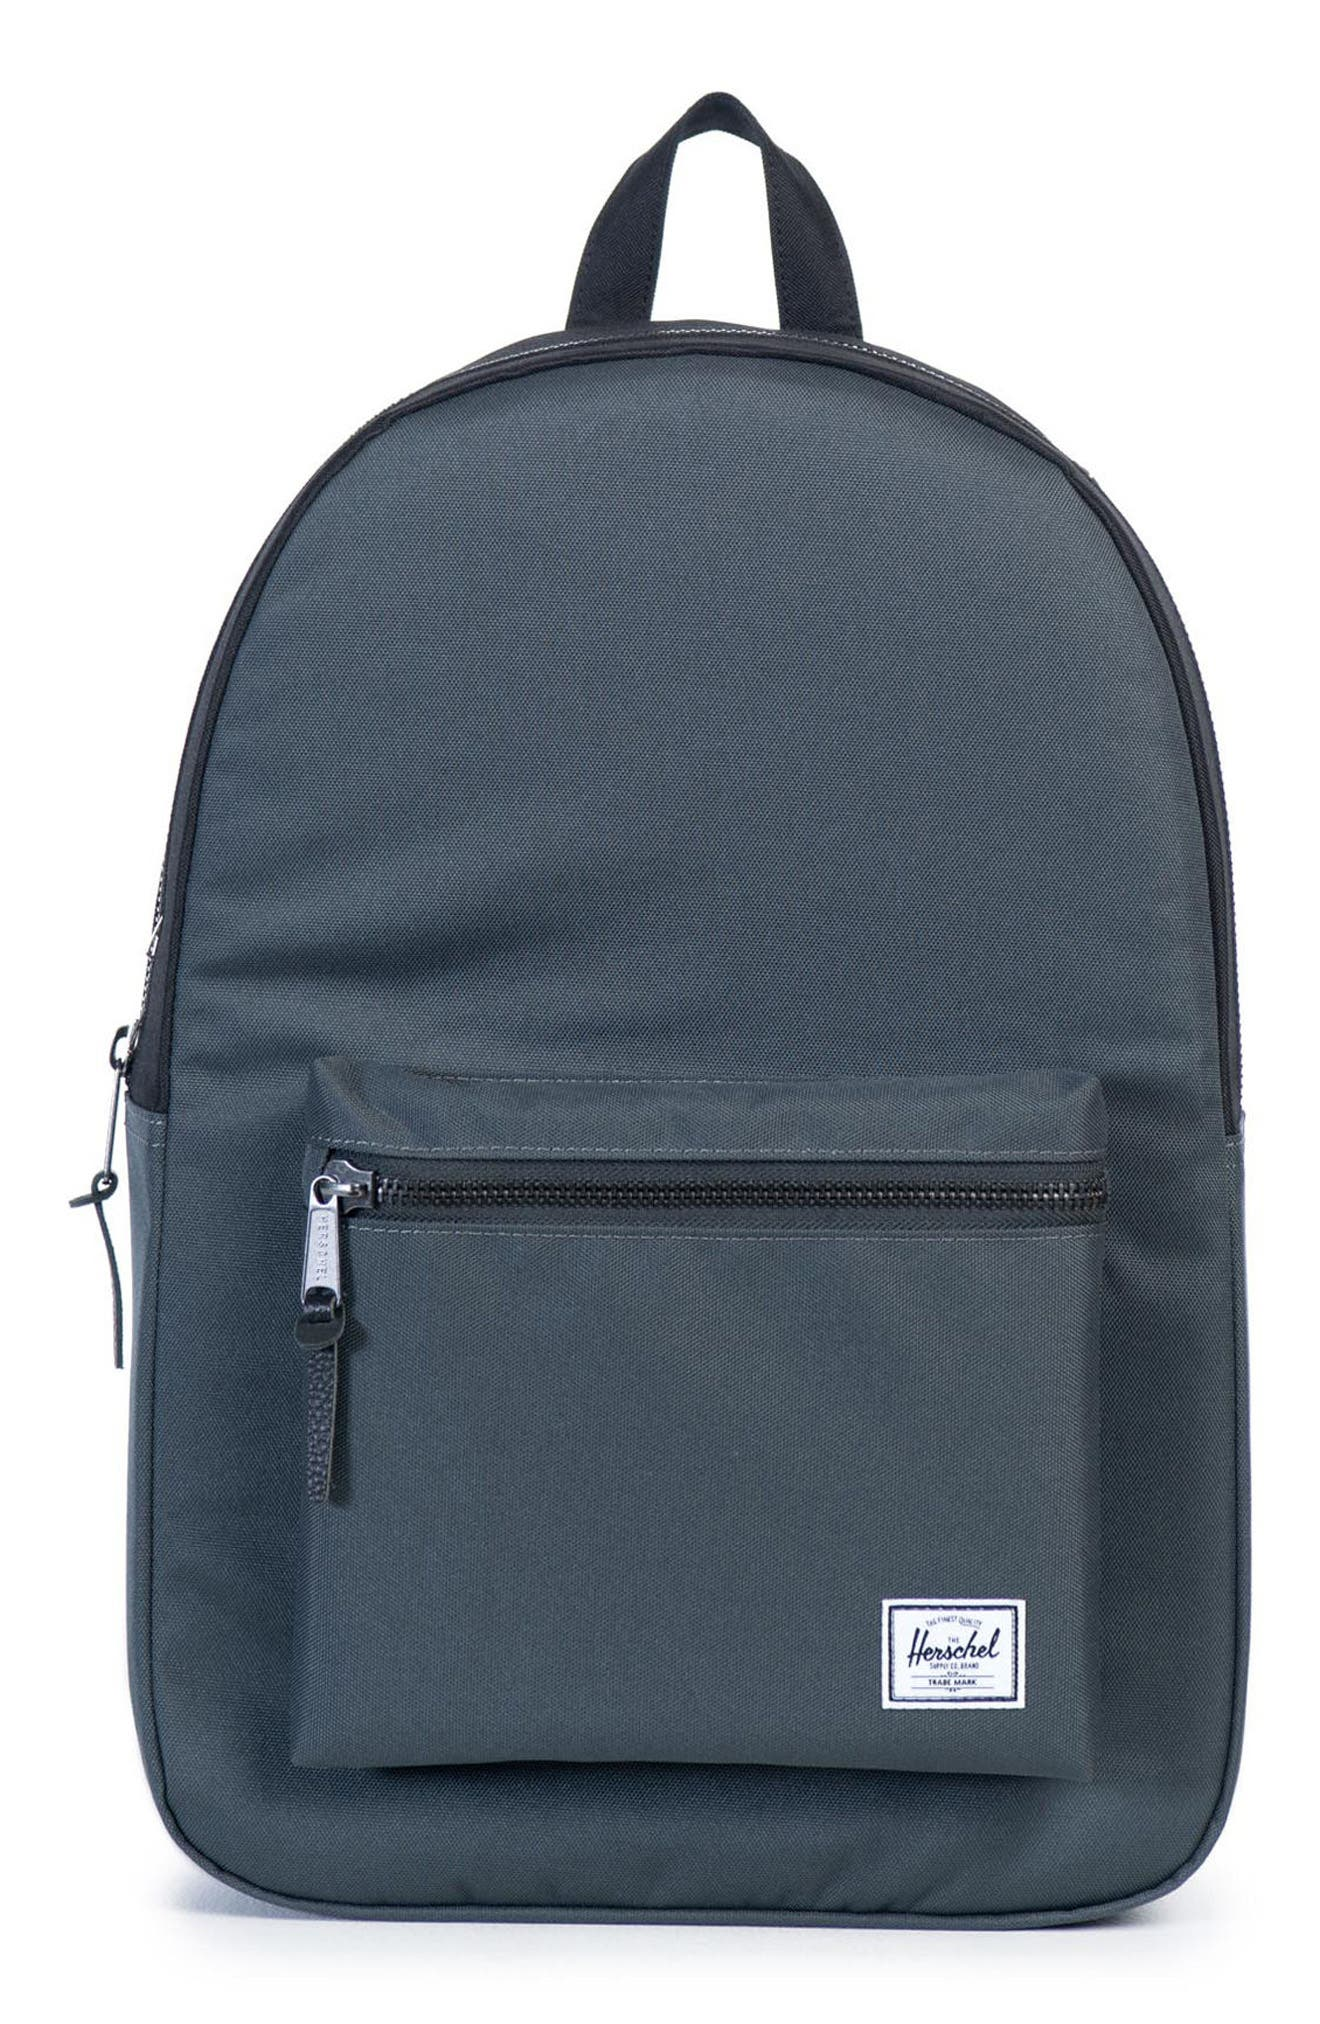 Settlement Backpack,                         Main,                         color, Dark Shadow/ Black